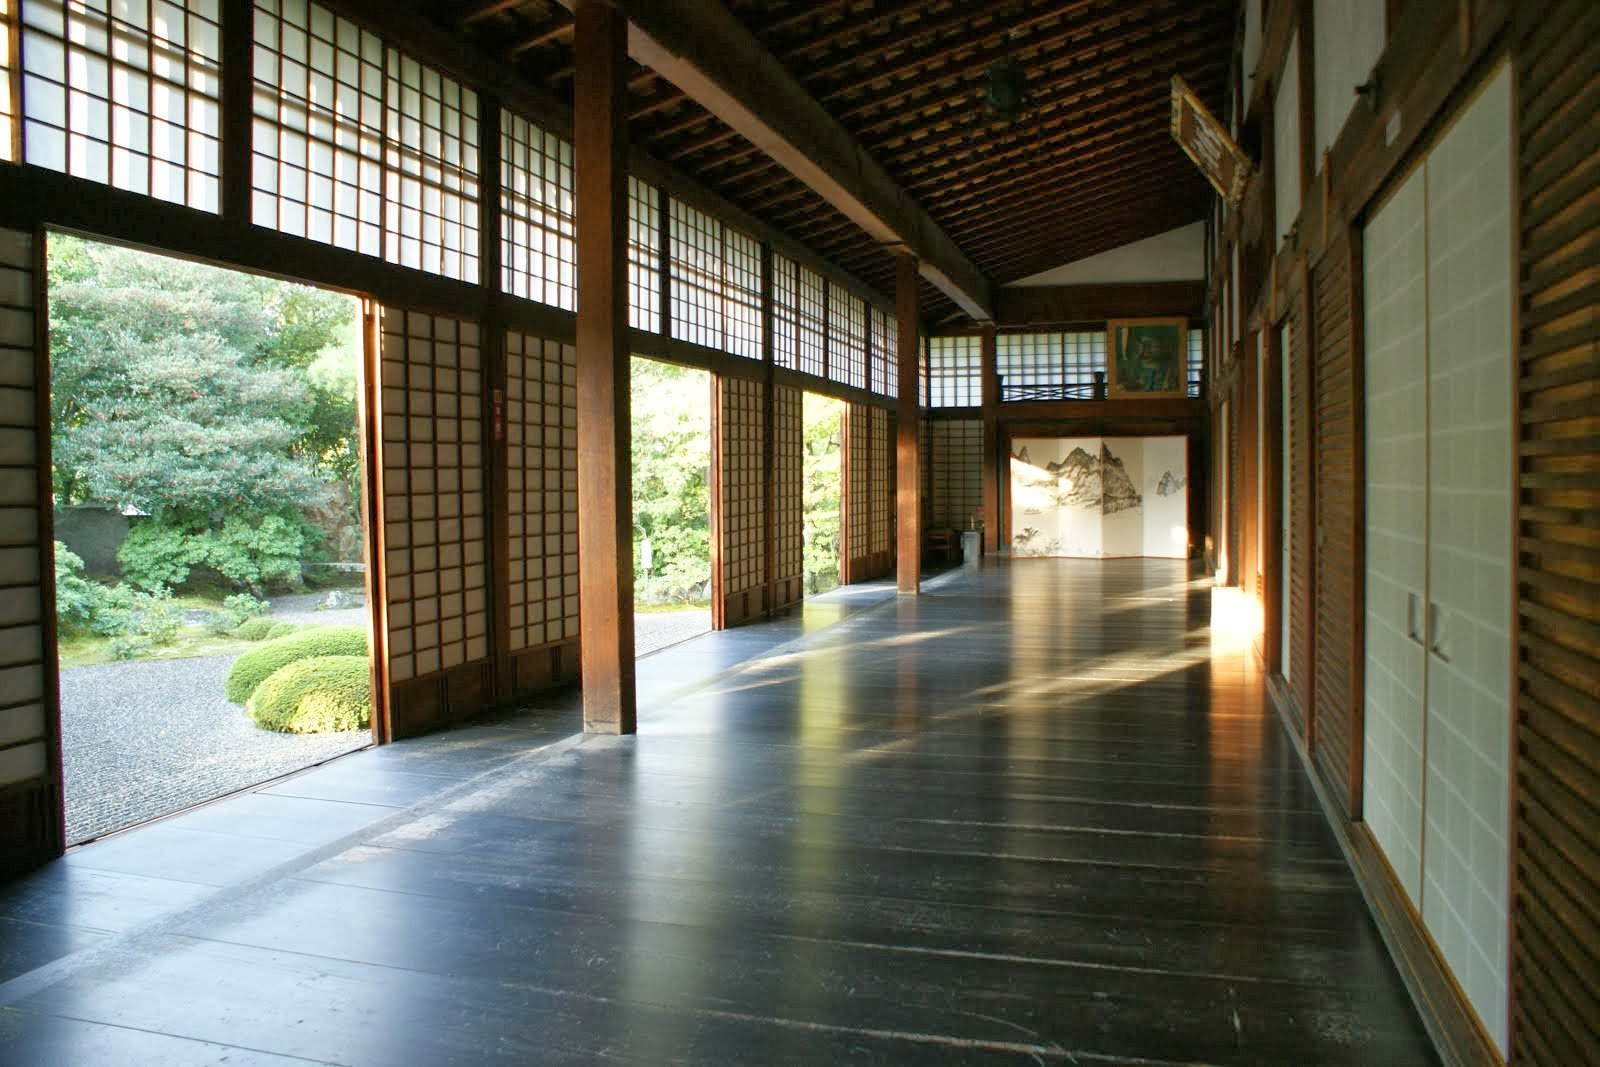 Shunkoin Temple's Prayer Hall